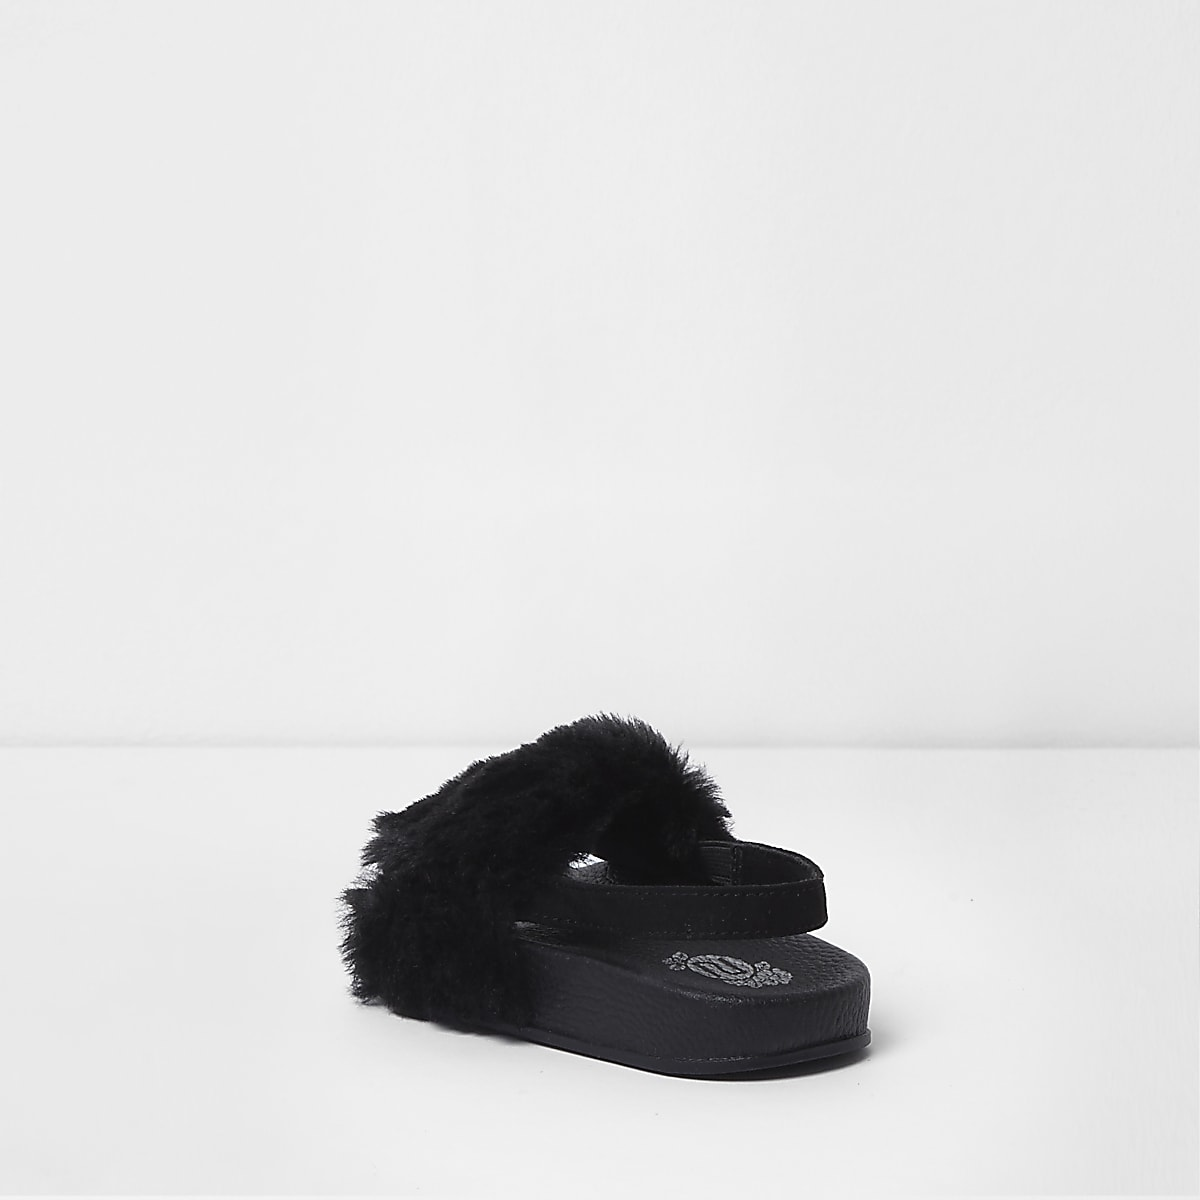 b8e0f507744e Mini girls black faux fur sling back sliders - Baby Girls Sandals ...